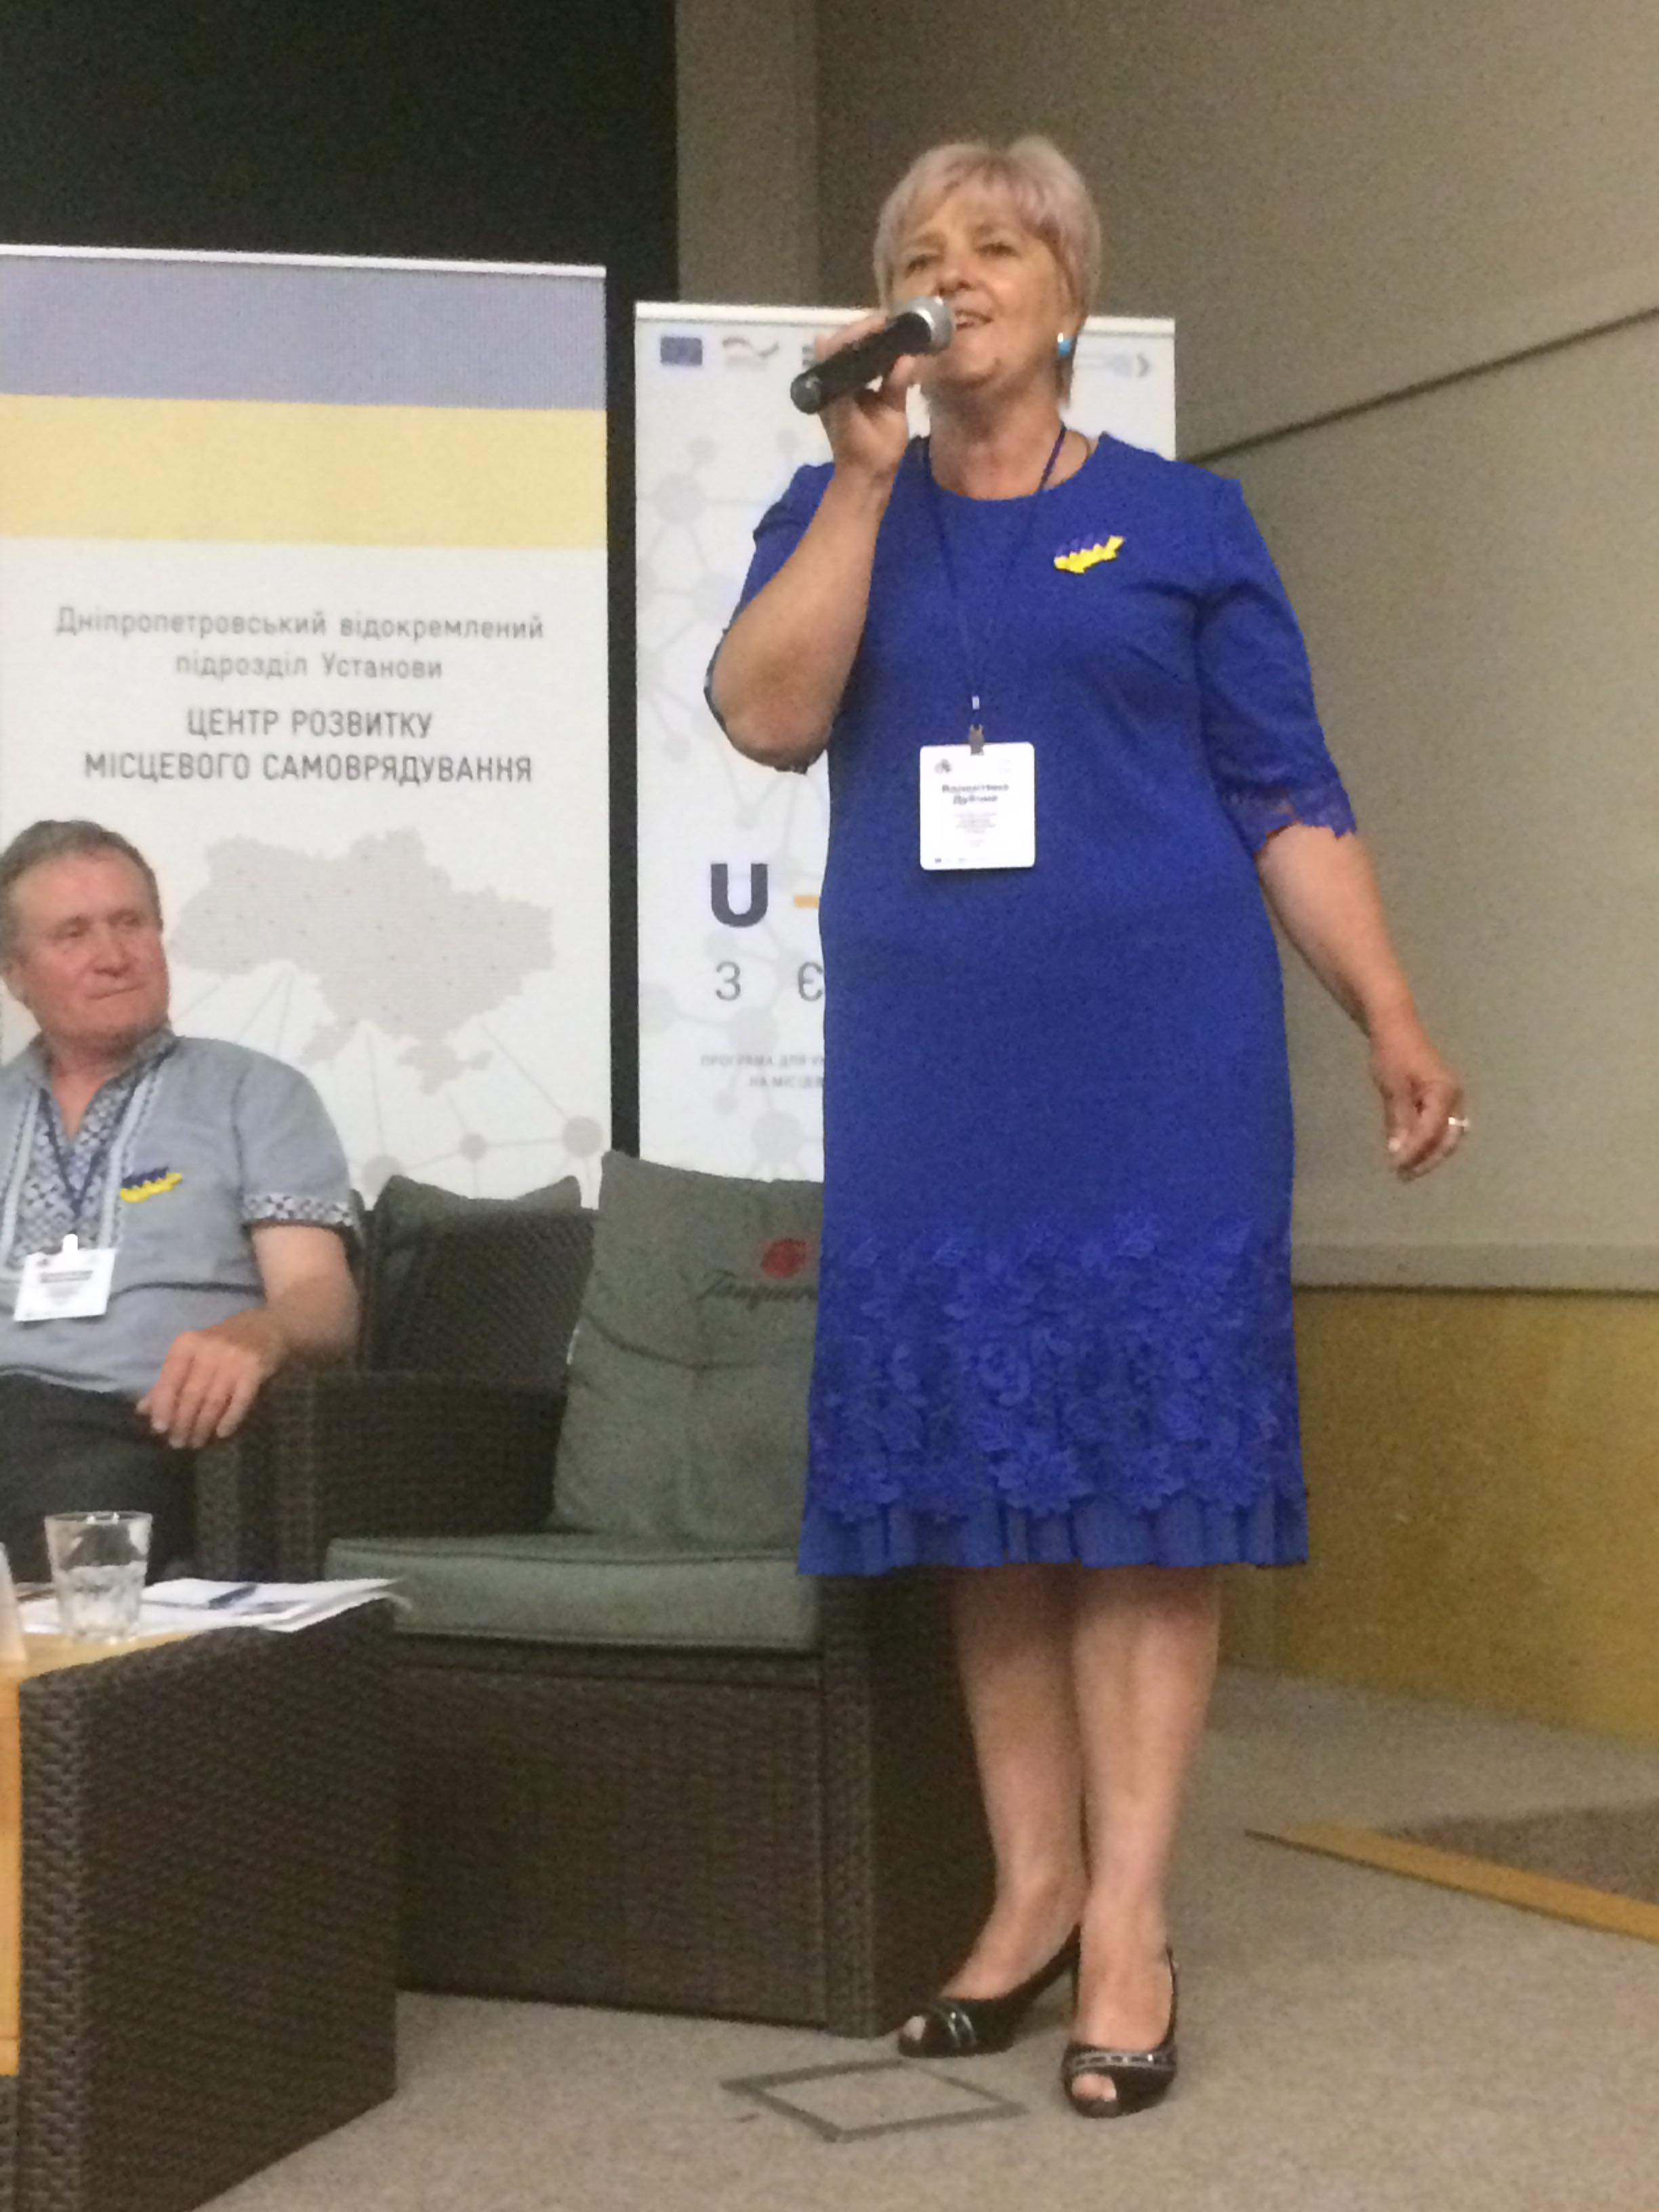 Starostas from Vinnytsia Oblast share experience with colleagues at Congress in Dnipro